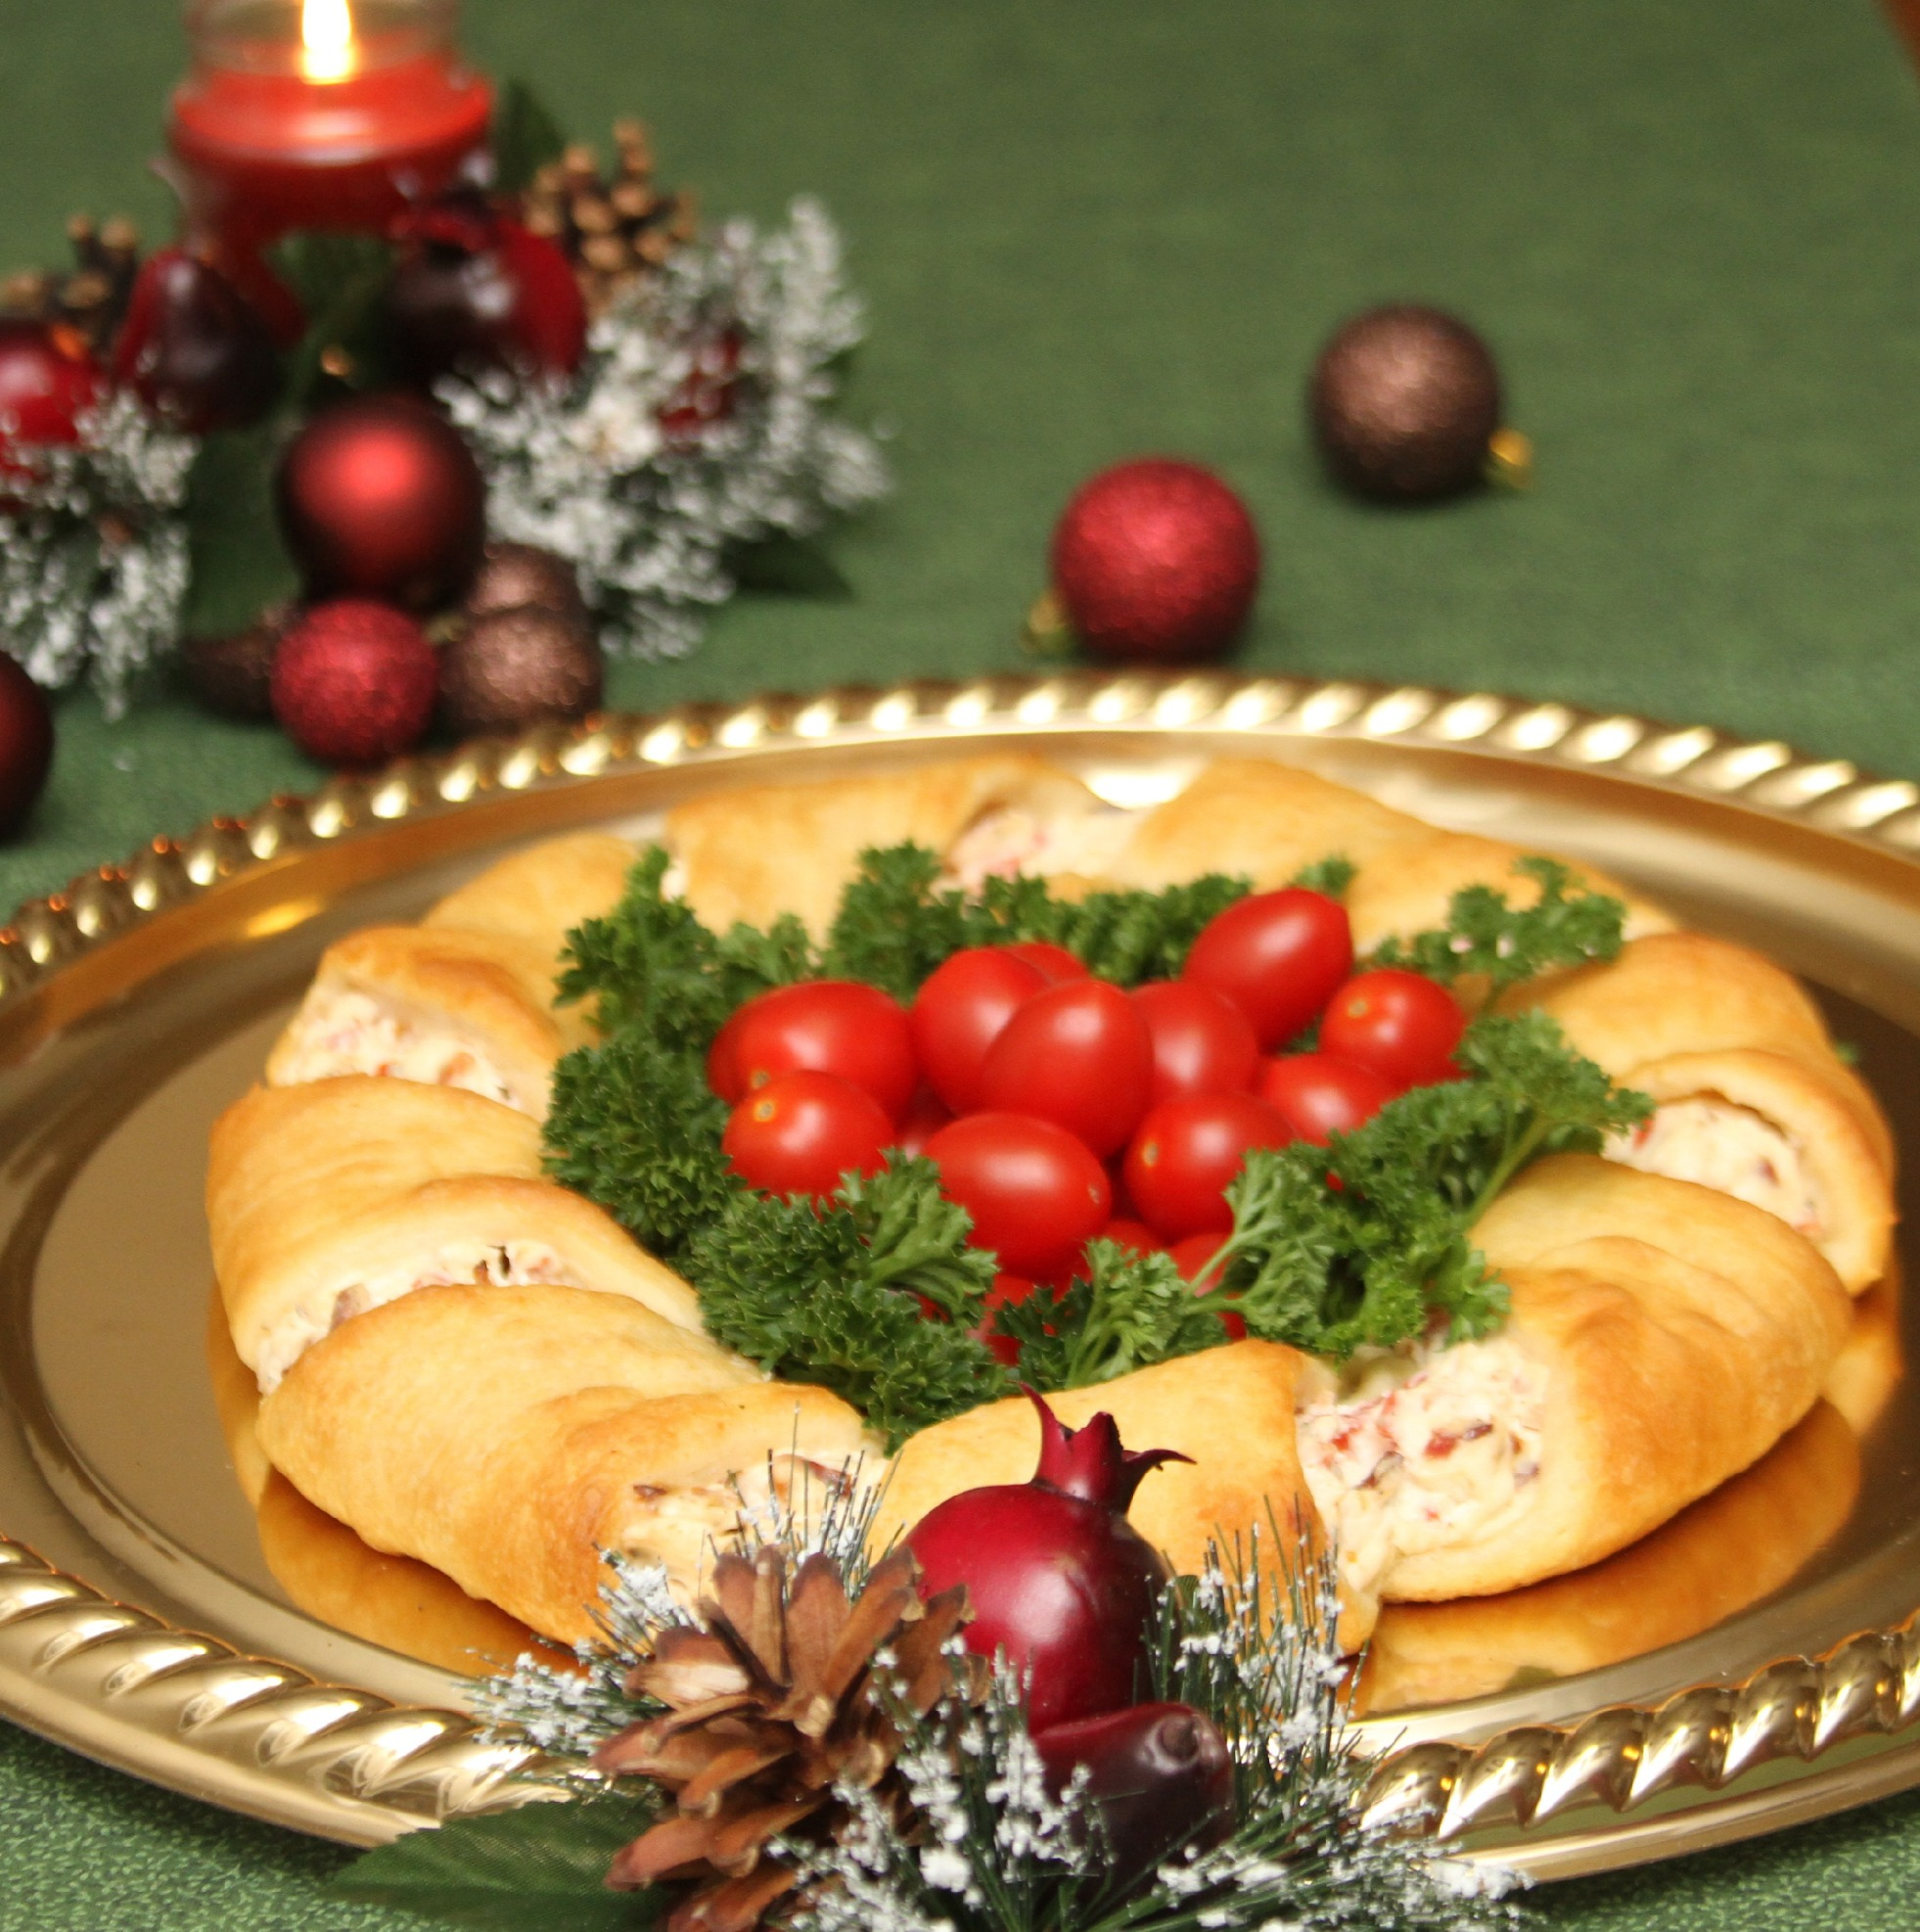 Incredible Christmas Wreath Crescent Rolls Appetizer Recipes Just Short Of Easy Diy Christmas Decorations Tissureus